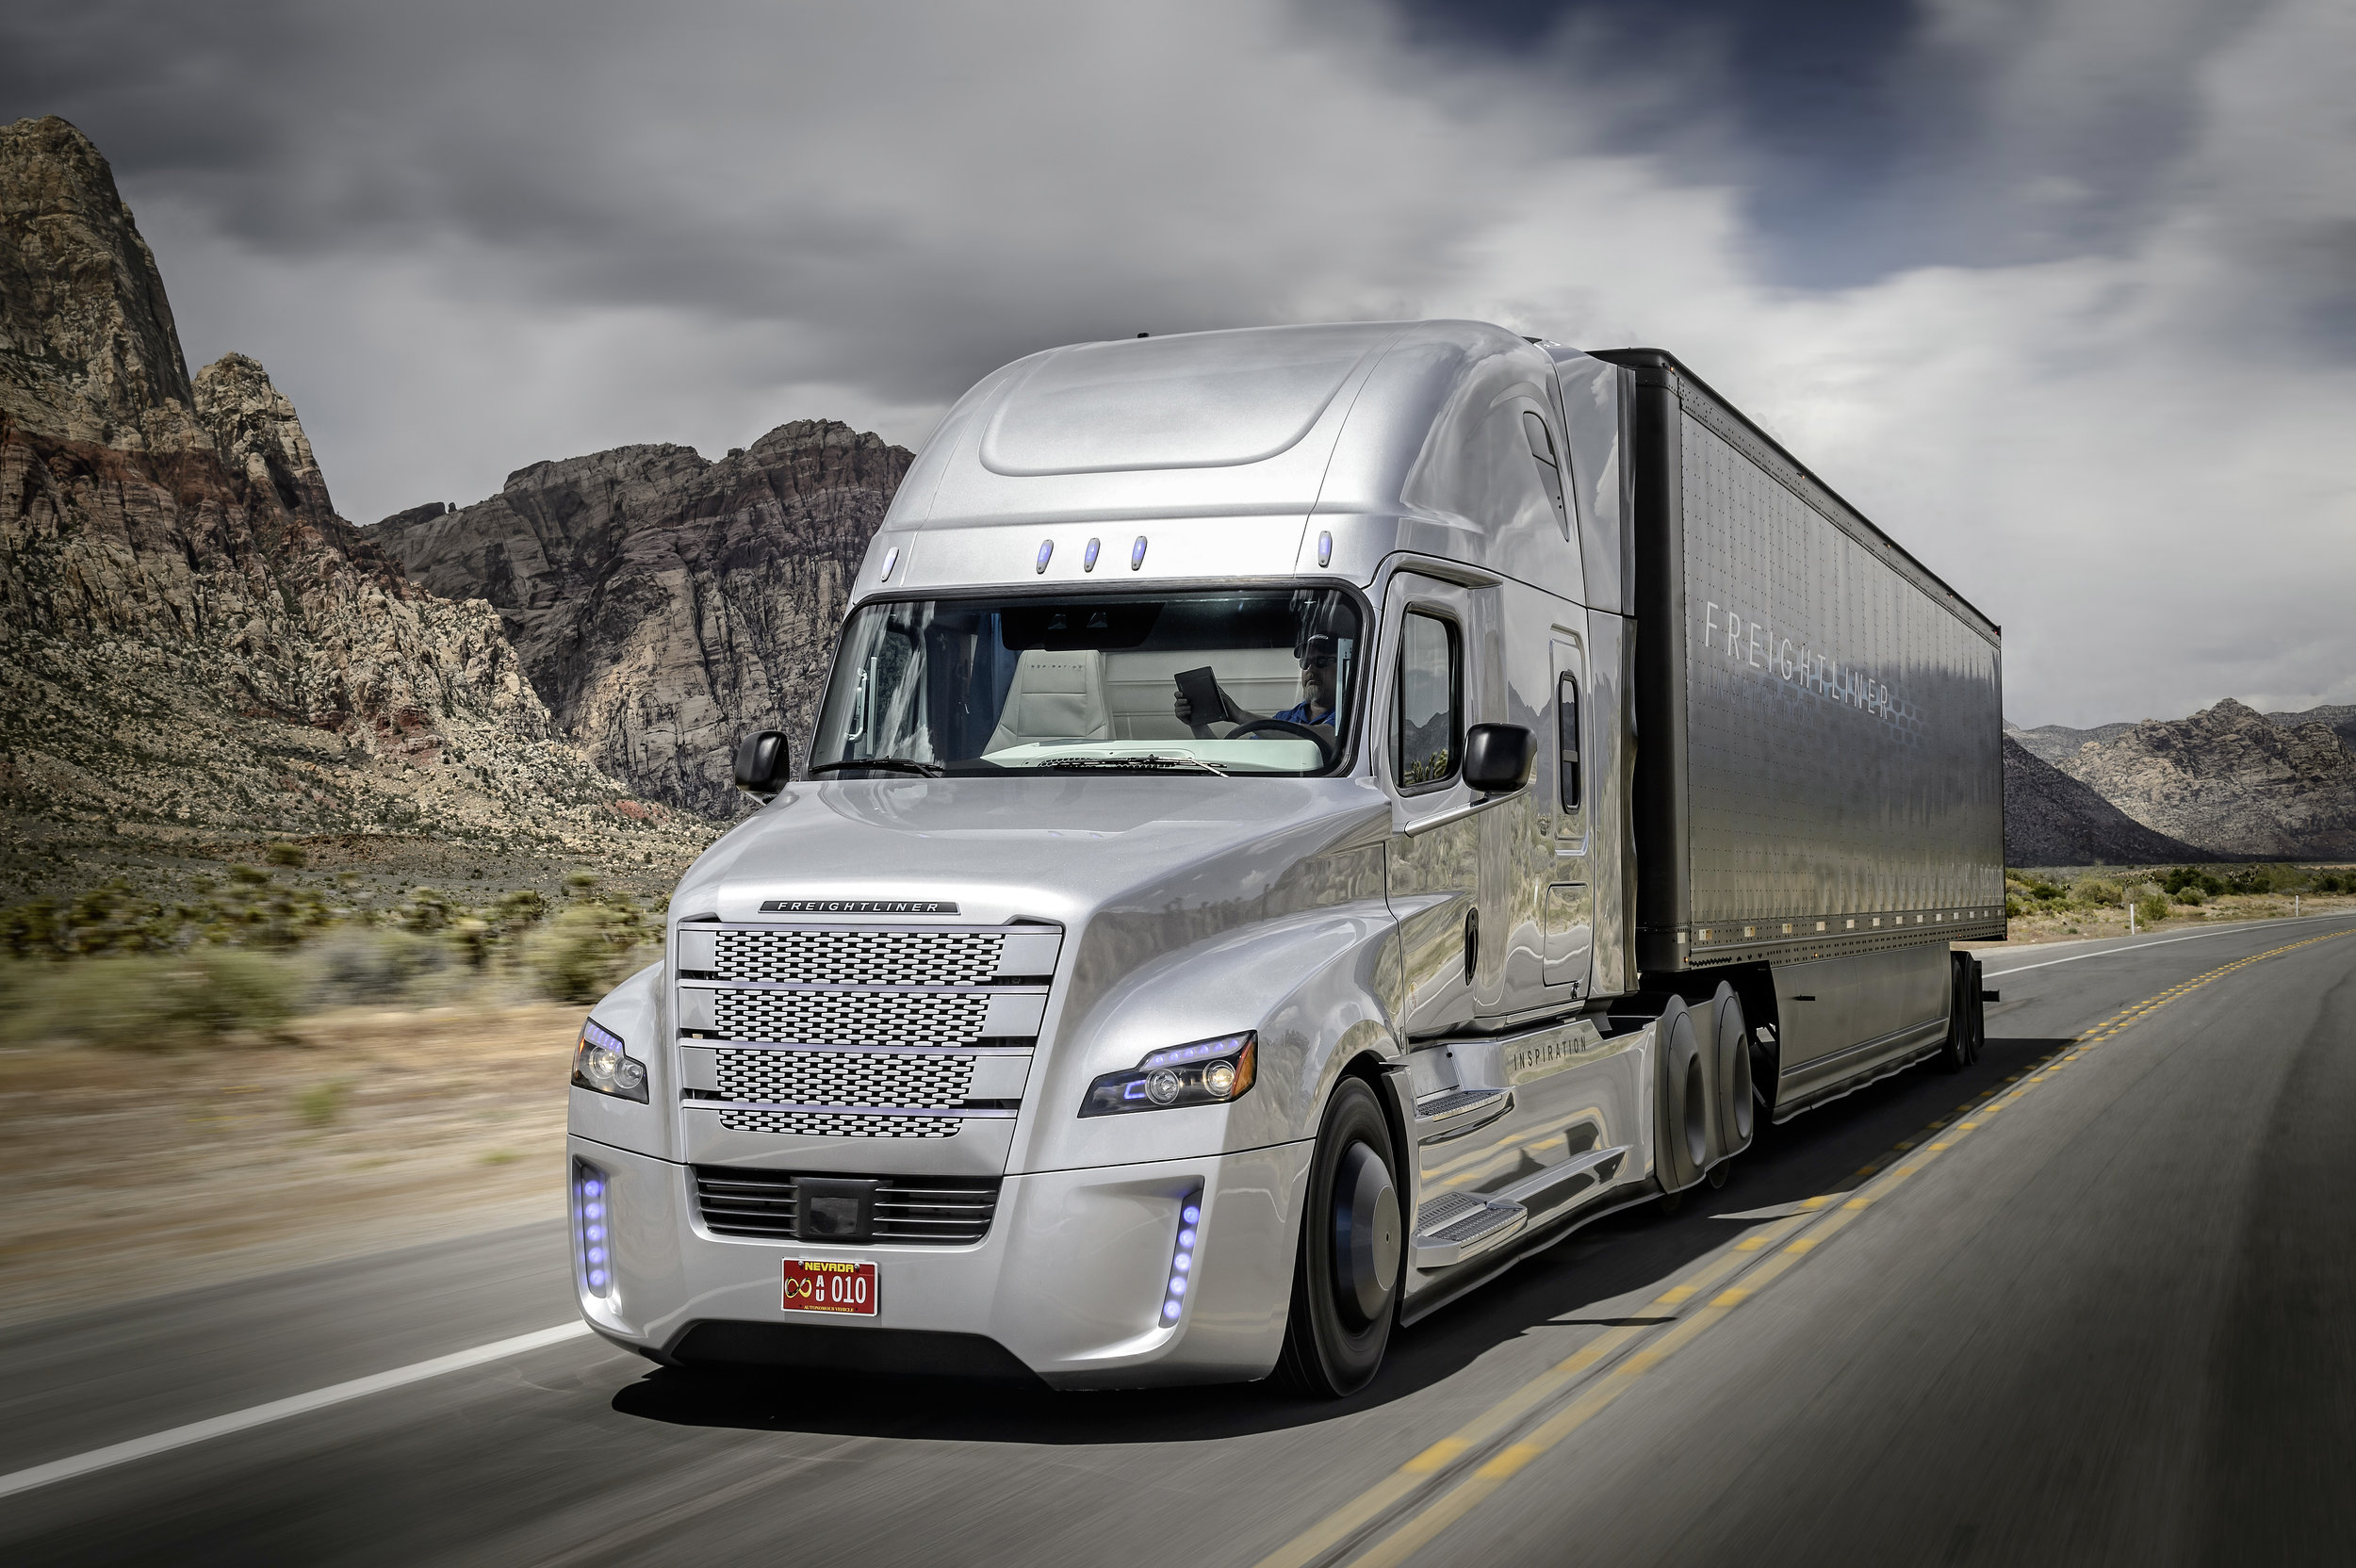 The Freightliner Inspiration autonomous truck, in trials now